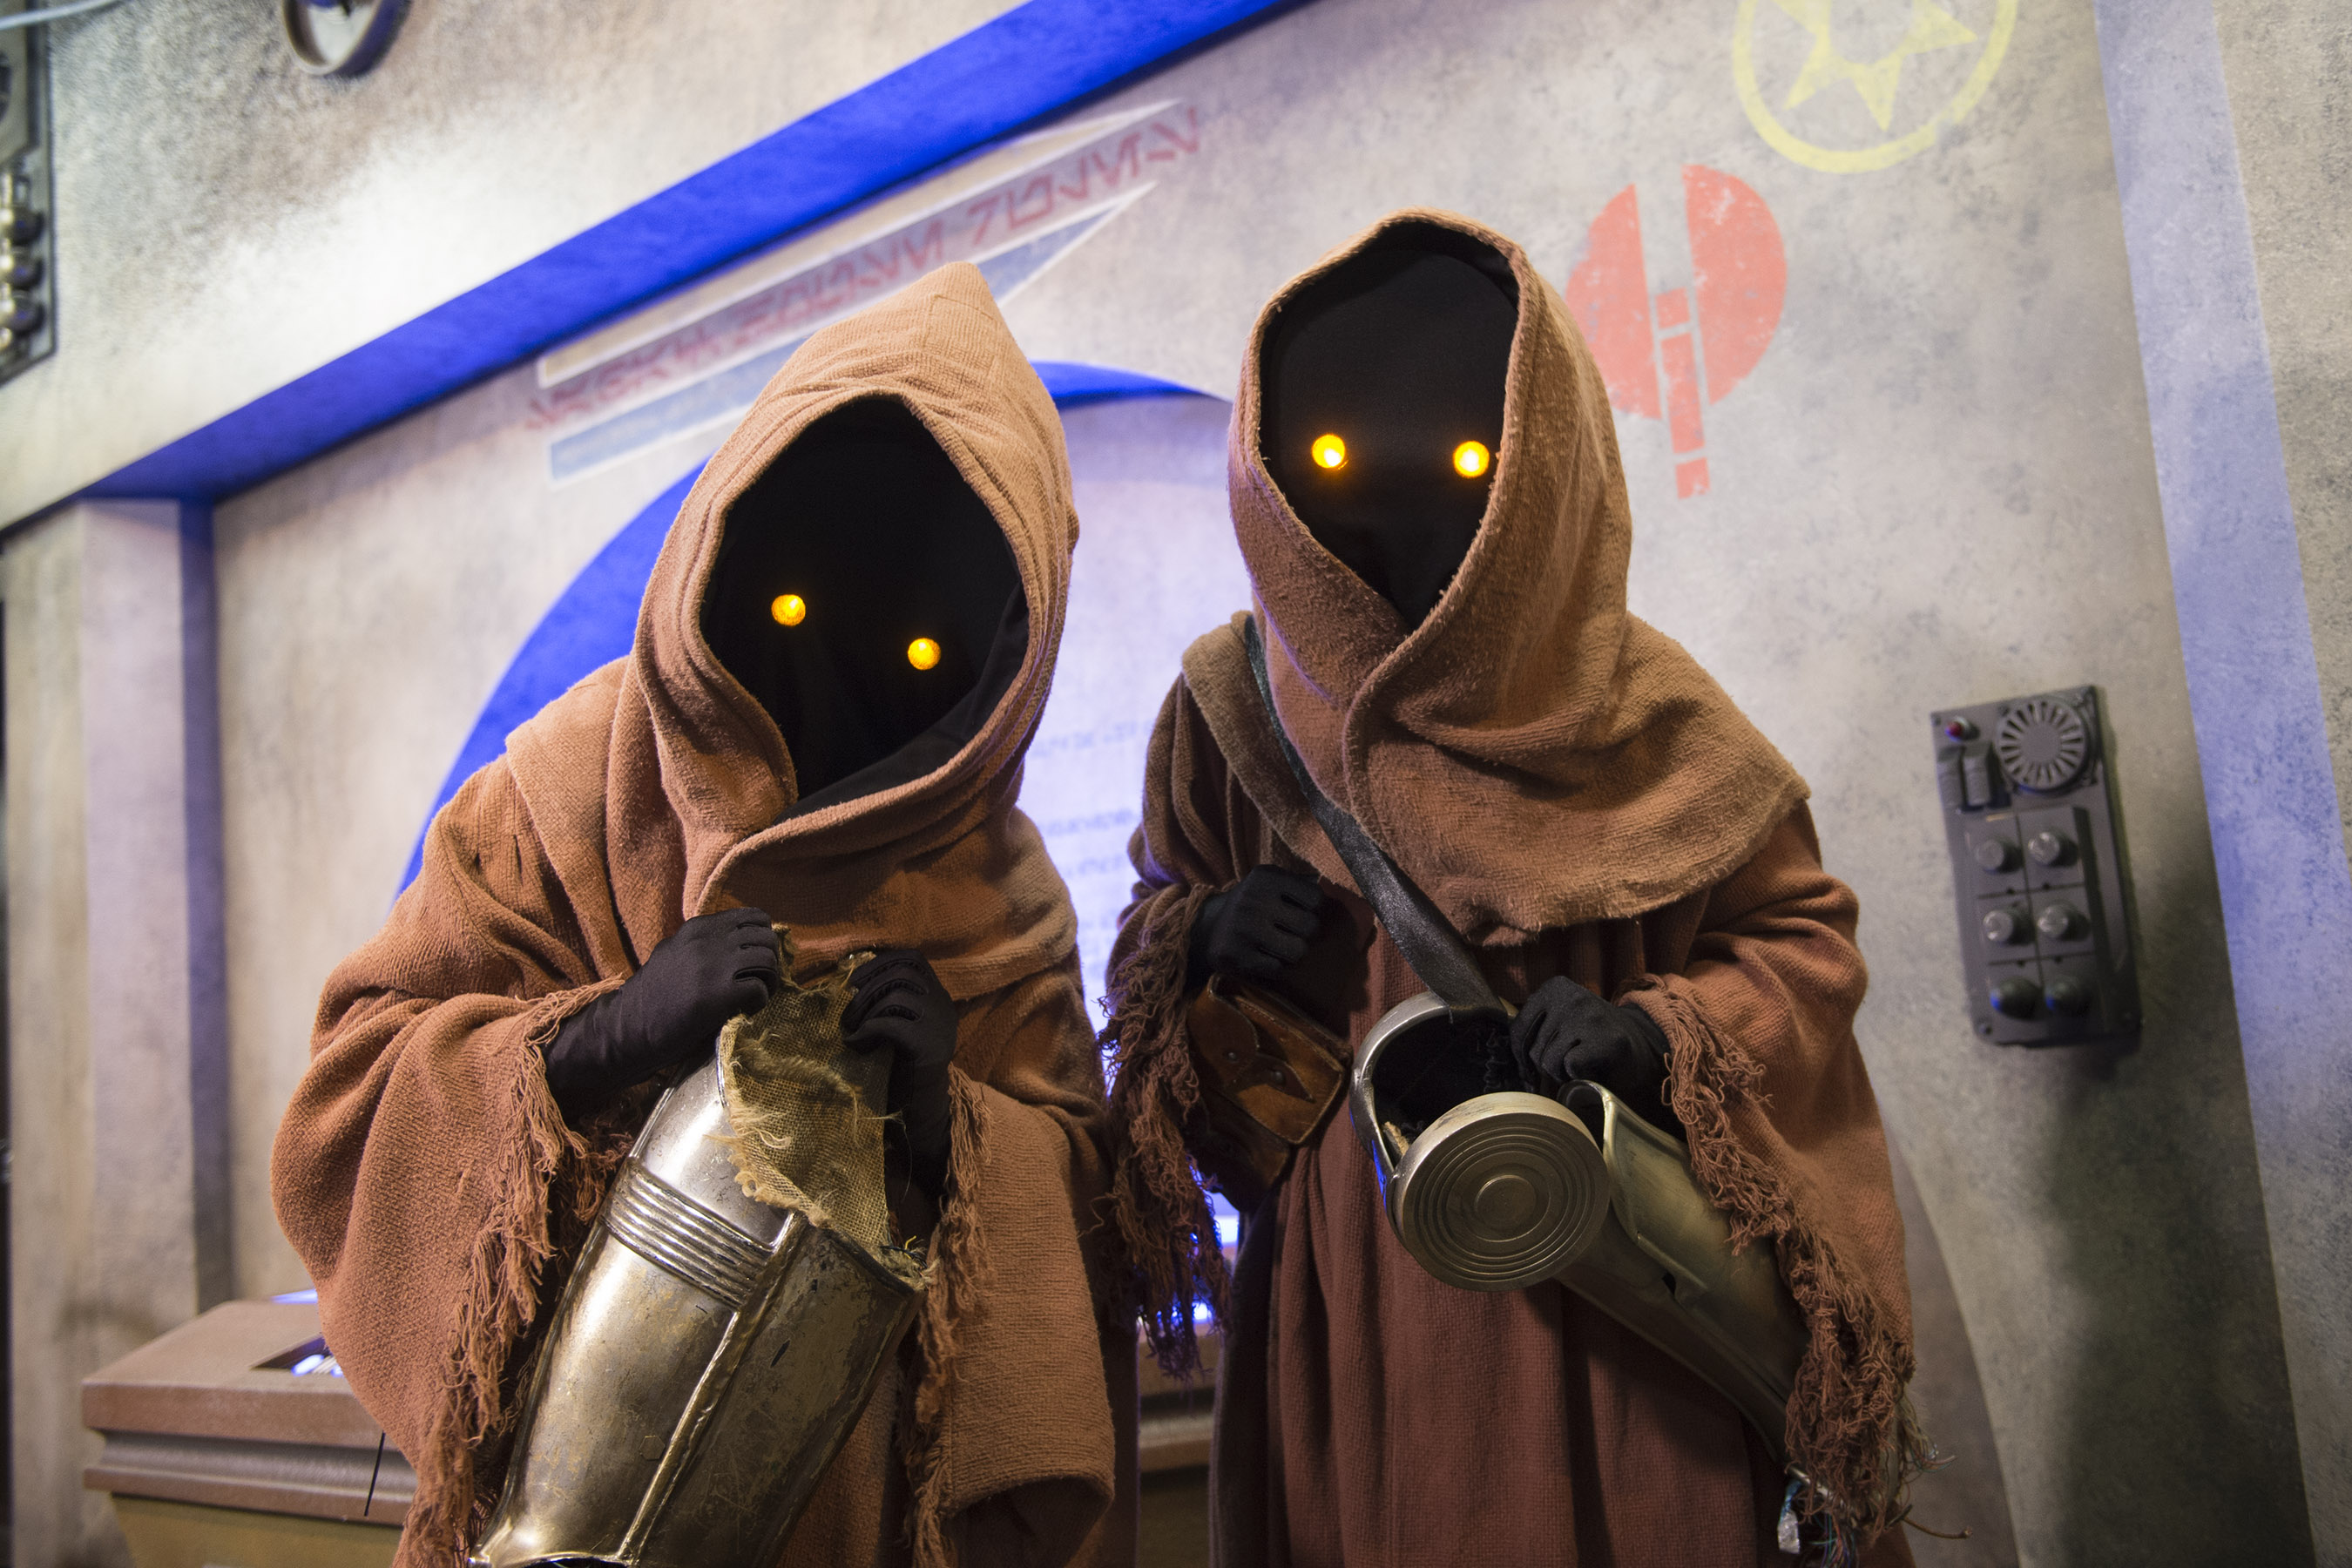 Star Wars Launch Bay is the central locale for guests to celebrate all things Star Wars at Disney's Hollywood Studios at Walt Disney World Resort. Inside, guests may encounter beloved Star Wars characters, play the latest Star Wars interactive video games, explore galleries full of treasured memorabilia and authentic replicas of large-scale Star Wars artifacts, including ones from Star Wars: The Force Awakens, and have access to Star Wars merchandise. (David Roark, photographer)